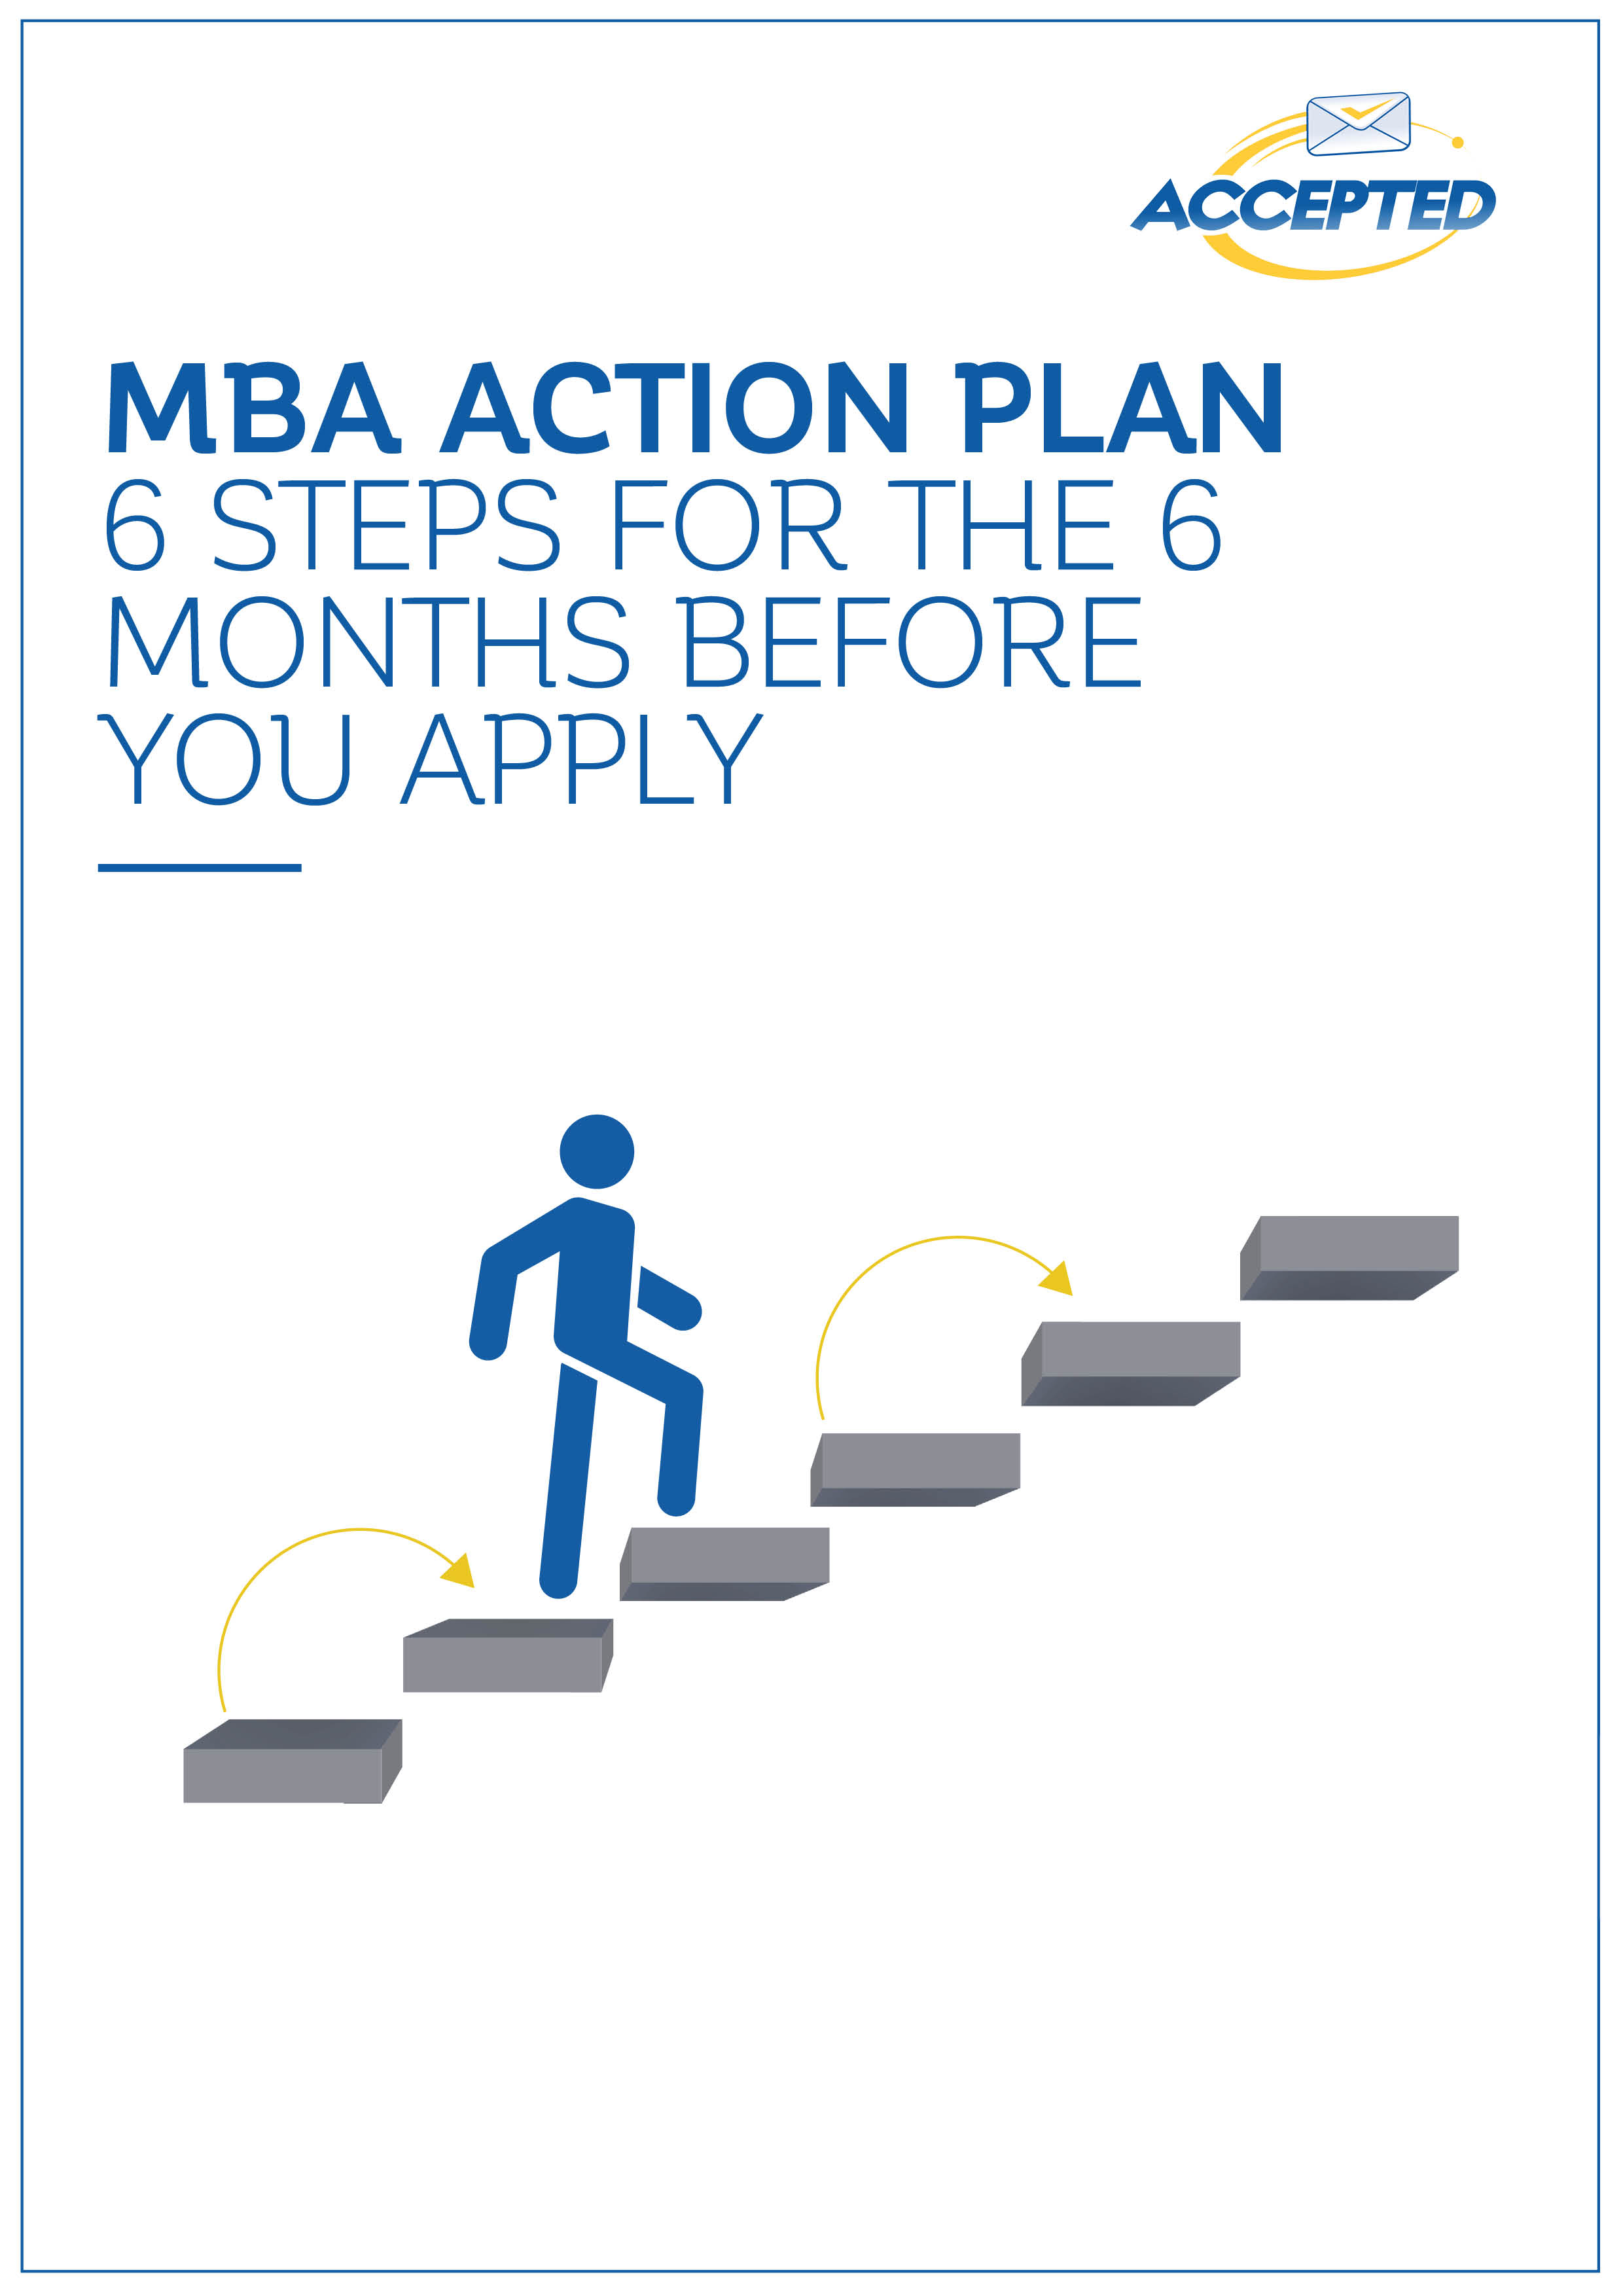 What steps should I take to apply to an MBA?